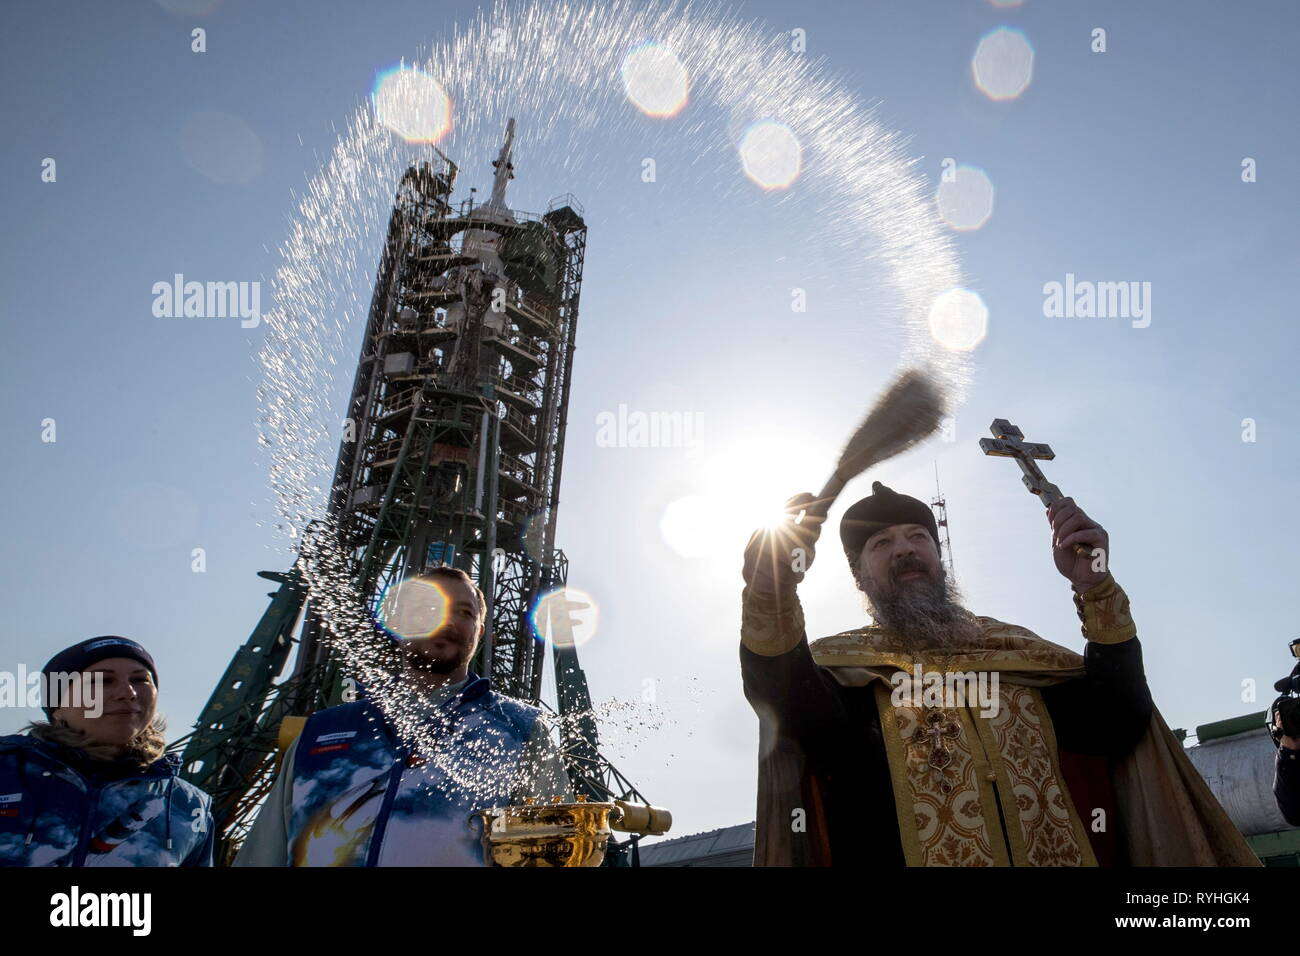 Kazakhstan. 14th Mar, 2019. KAZAKHSTAN - MARCH 14, 2019: An Orthodox priest blesses a Soyuz-FG rocket booster carrying the Soyuz MS-12 and installed on a launch pad at the Baikonur Cosmodrome. The launch of the Soyuz MS-12 spacecraft crew of Roscosmos cosmonaut Alexei Ovchinin and NASA astronauts Nick Hague, Christina Koch to the International Space Station (ISS) is scheduled for March 14, 2019. Sergei Savostyanov/TASS Credit: ITAR-TASS News Agency/Alamy Live News Stock Photo